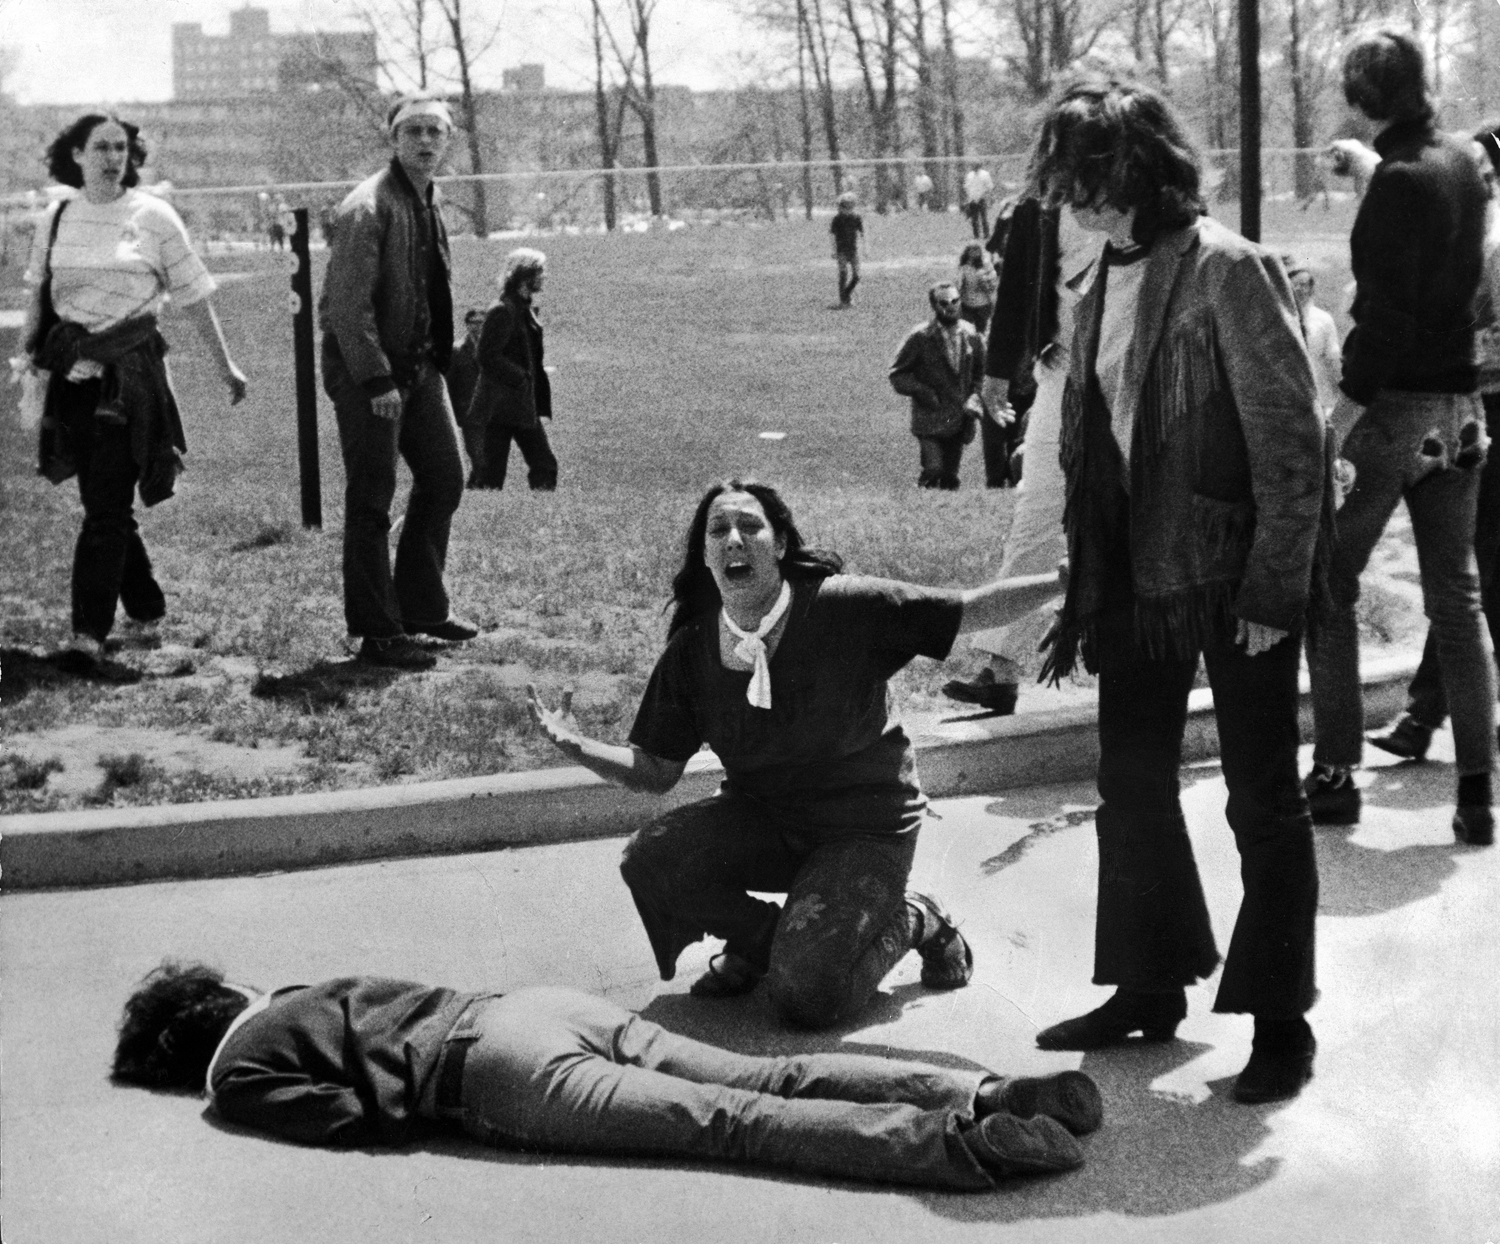 Kent State, 1970                               Fourteen-year-old Mary Ann Vecchio kneels over the body of Jeffrey Miller, a student at the university who was killed by National Guardsmen during a protest against the war in Vietnam. This Pulitzer Prize–winning photograph, taken by photojournalism student John Filo, became an icon of the tumultuous period.